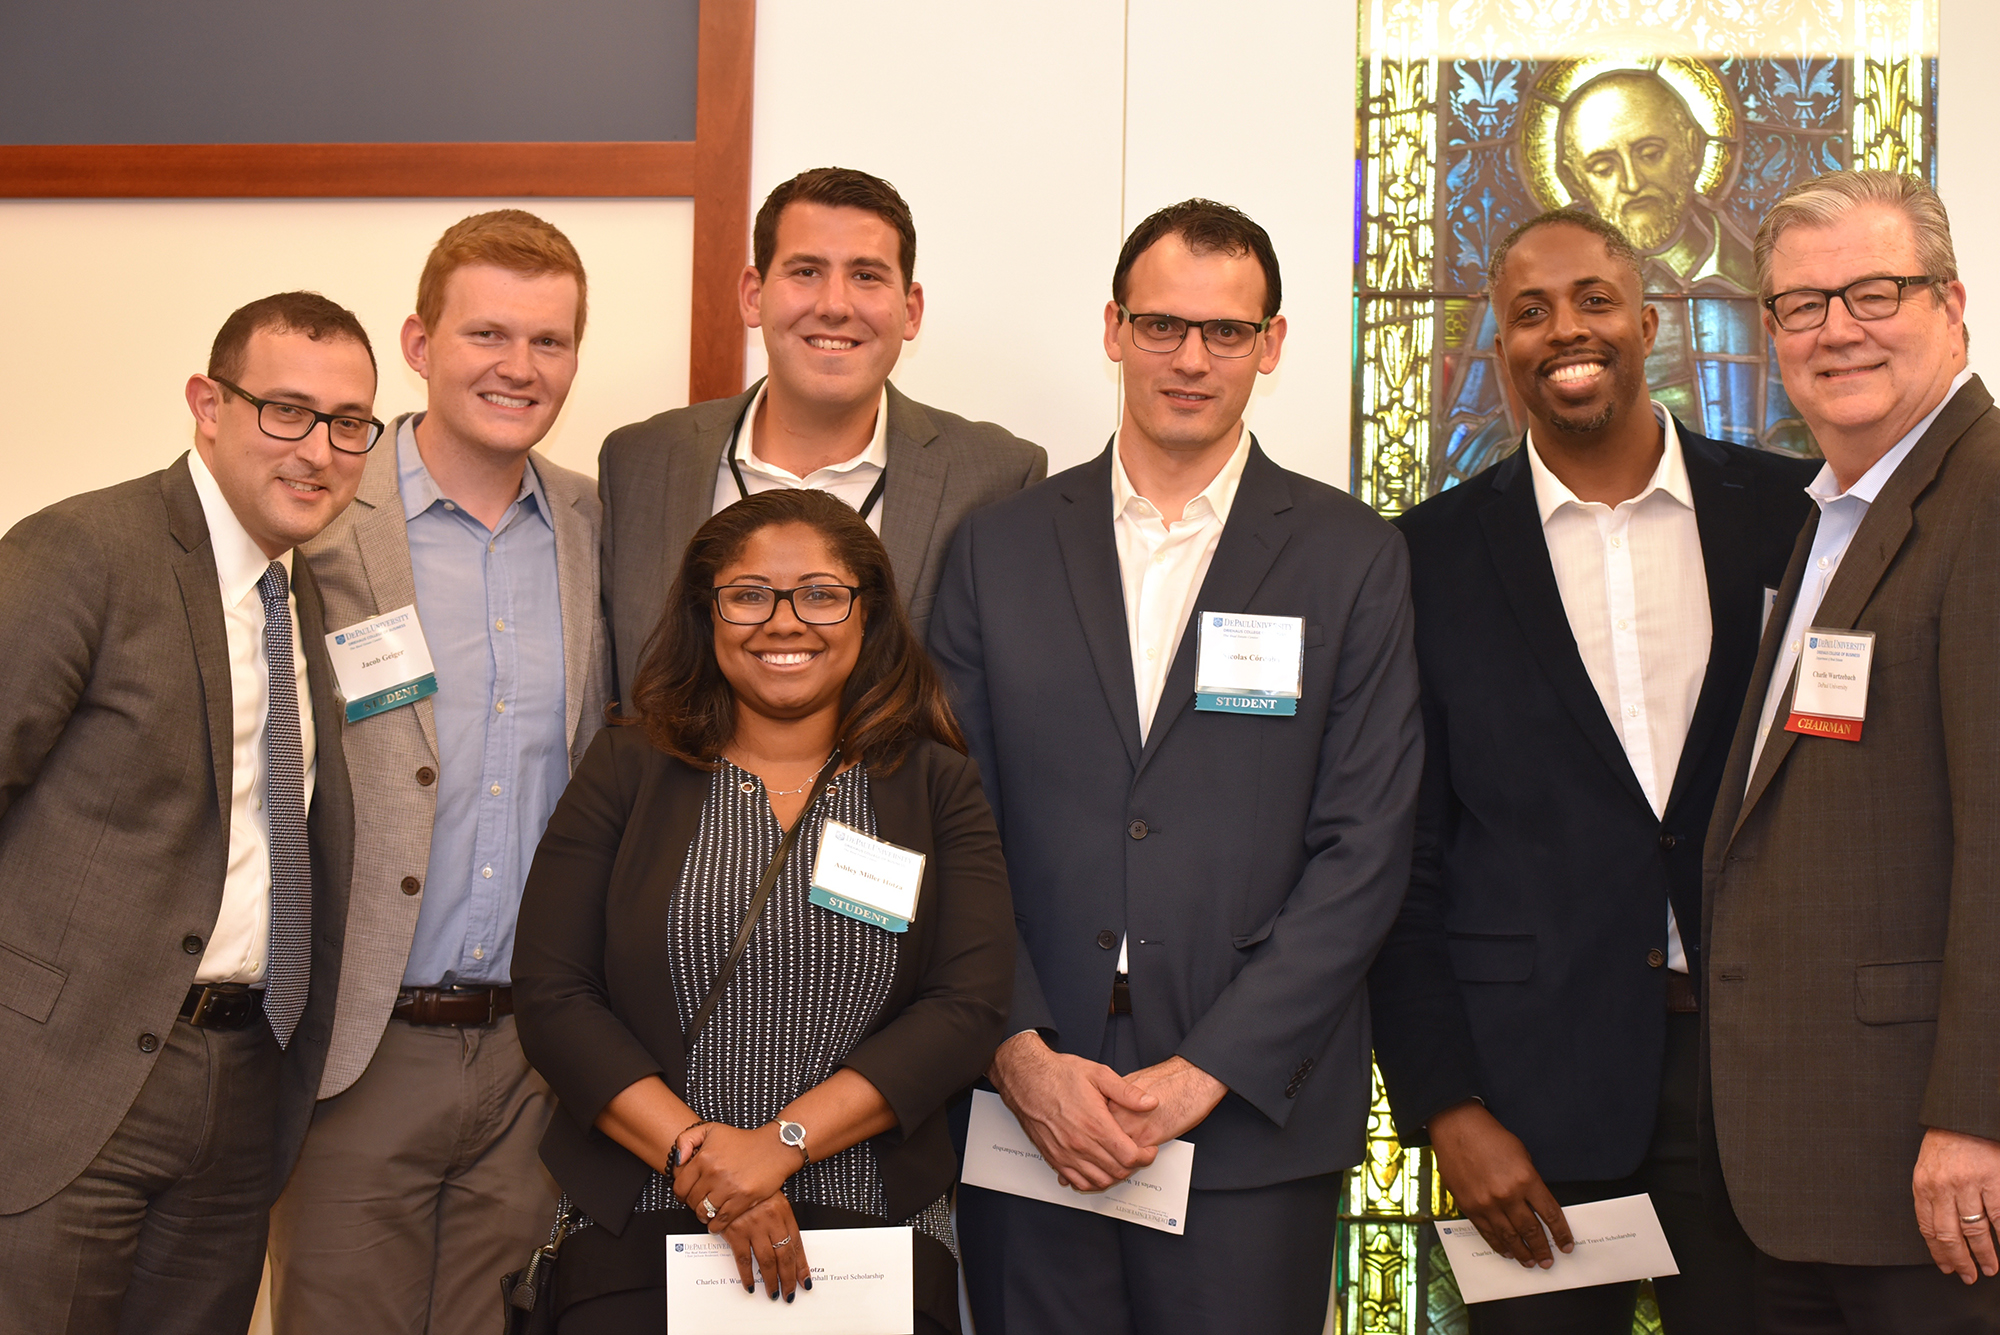 Student scholars recognized at Real Estate Center reception